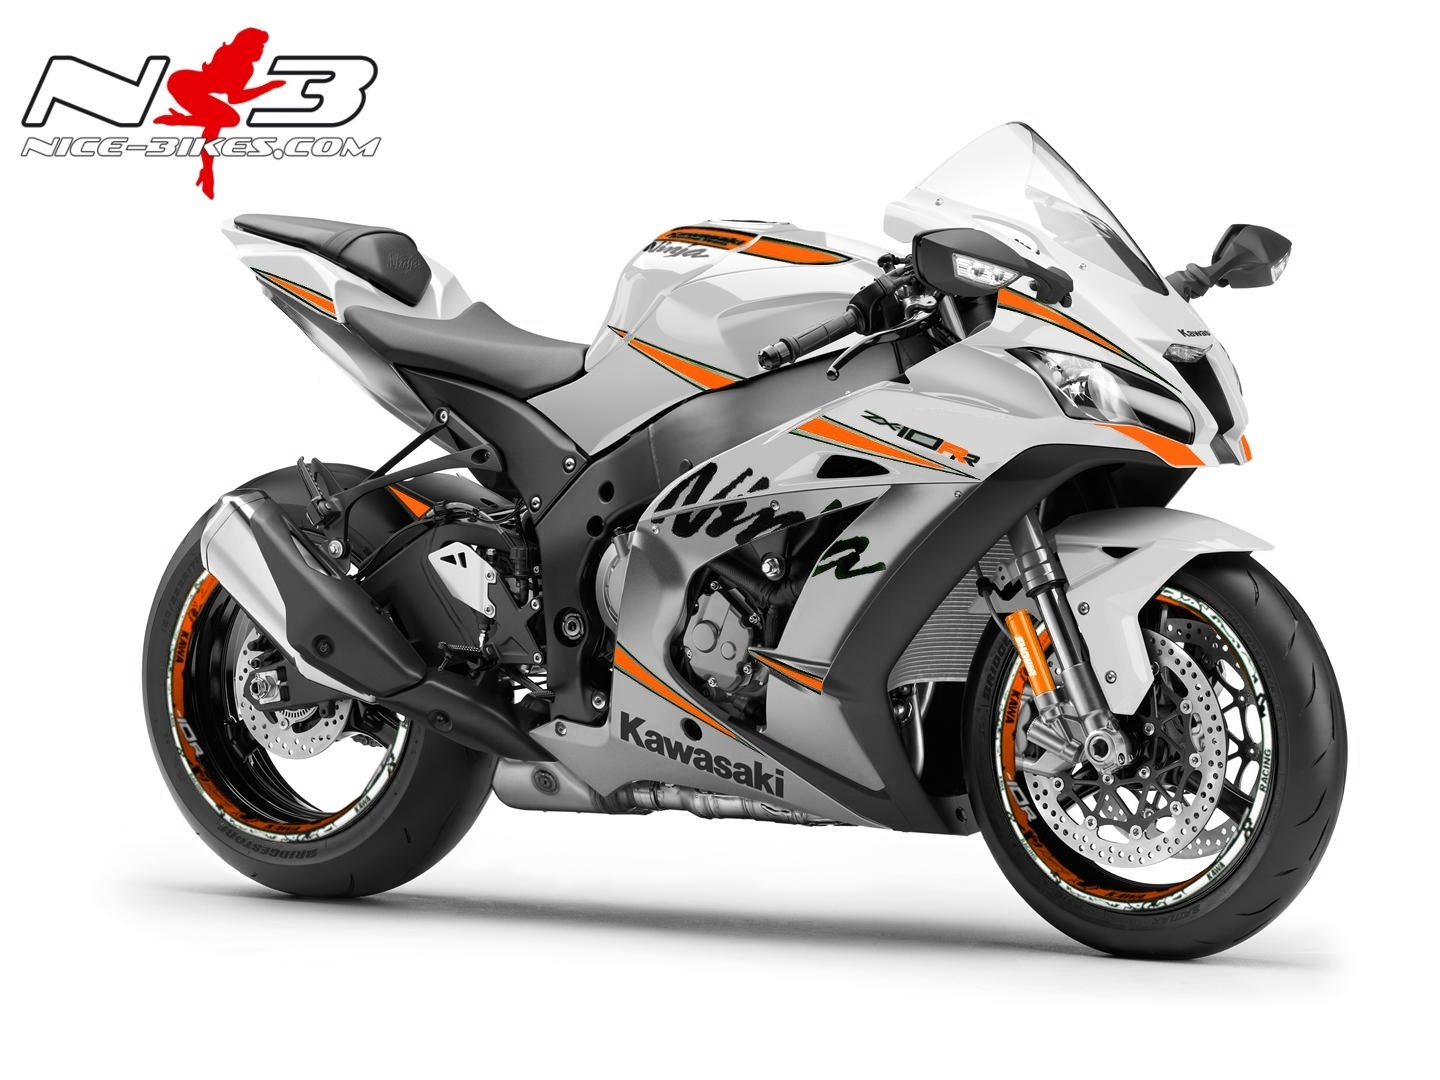 ___ ZX-10R Ninja ___ GET-CLOSER Orange auf weißer Maschine 2017